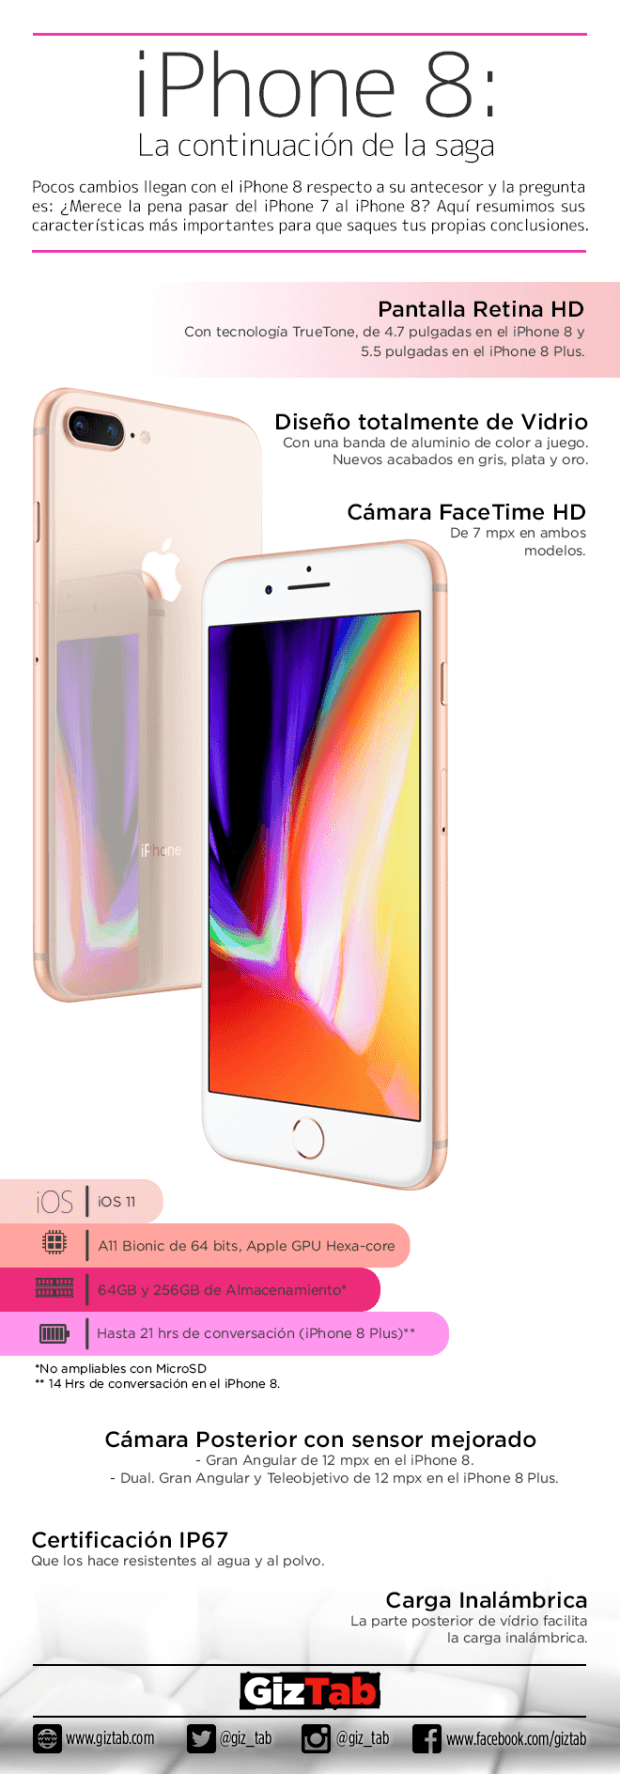 caracteristicas del iphone 8 plus